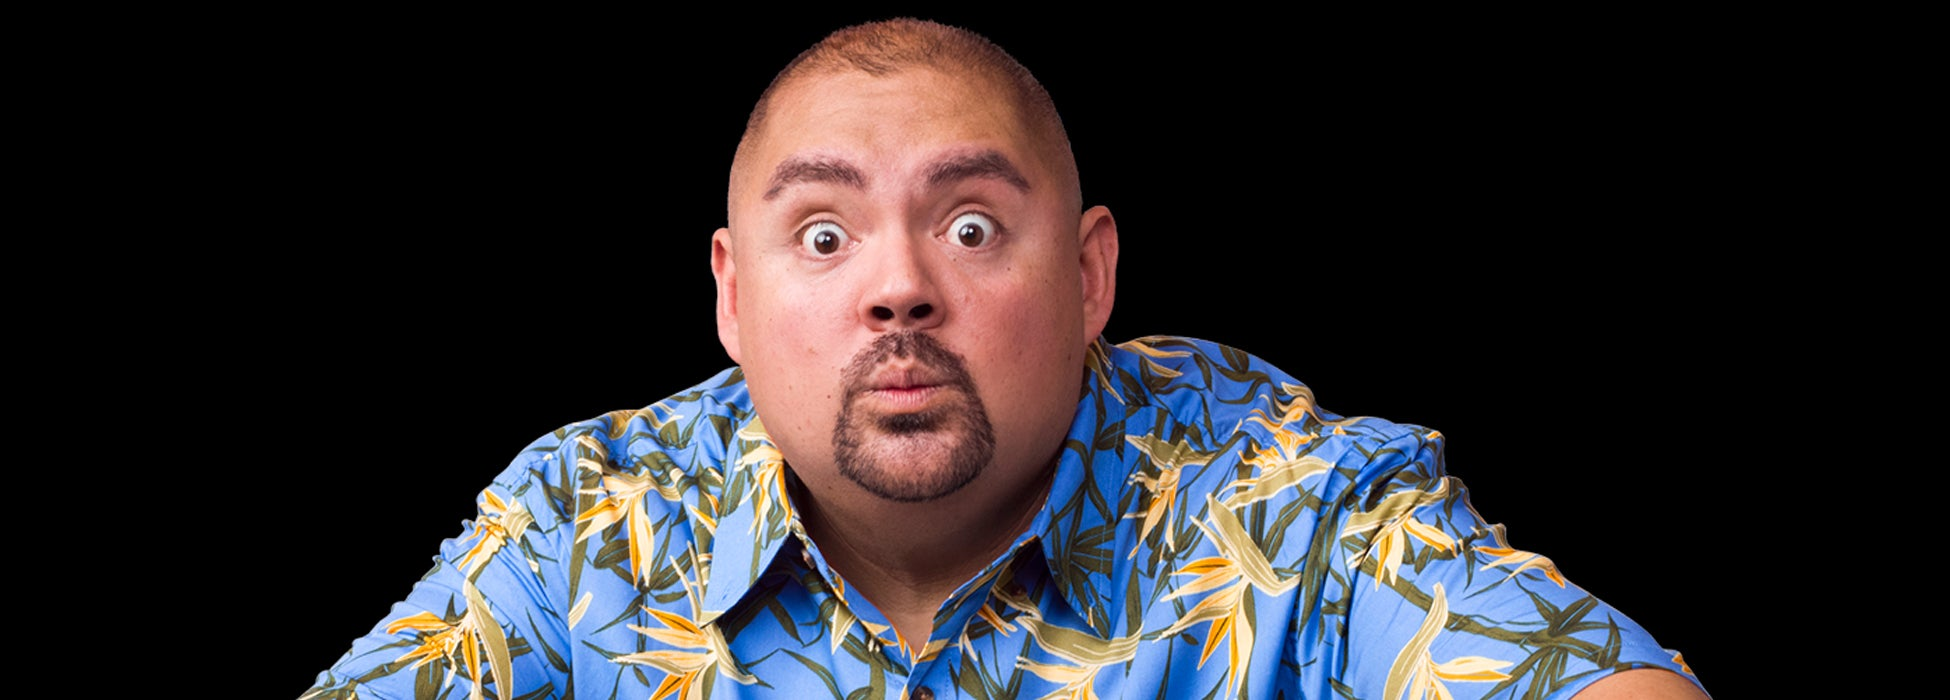 gabriel iglesias на русскомgabriel iglesias на русском, gabriel iglesias aloha fluffy, gabriel iglesias rus, gabriel iglesias с переводом, gabriel iglesias specials, gabriel iglesias watch online, gabriel iglesias youtube, gabriel iglesias full, gabriel iglesias 2016, gabriel iglesias indian robber, gabriel iglesias net worth, gabriel iglesias full stand up, gabriel iglesias 2017, gabriel iglesias online, gabriel iglesias subtitles, gabriel iglesias height, gabriel iglesias hawai, gabriel iglesias tour dates, gabriel iglesias india, gabriel iglesias i'm not fat